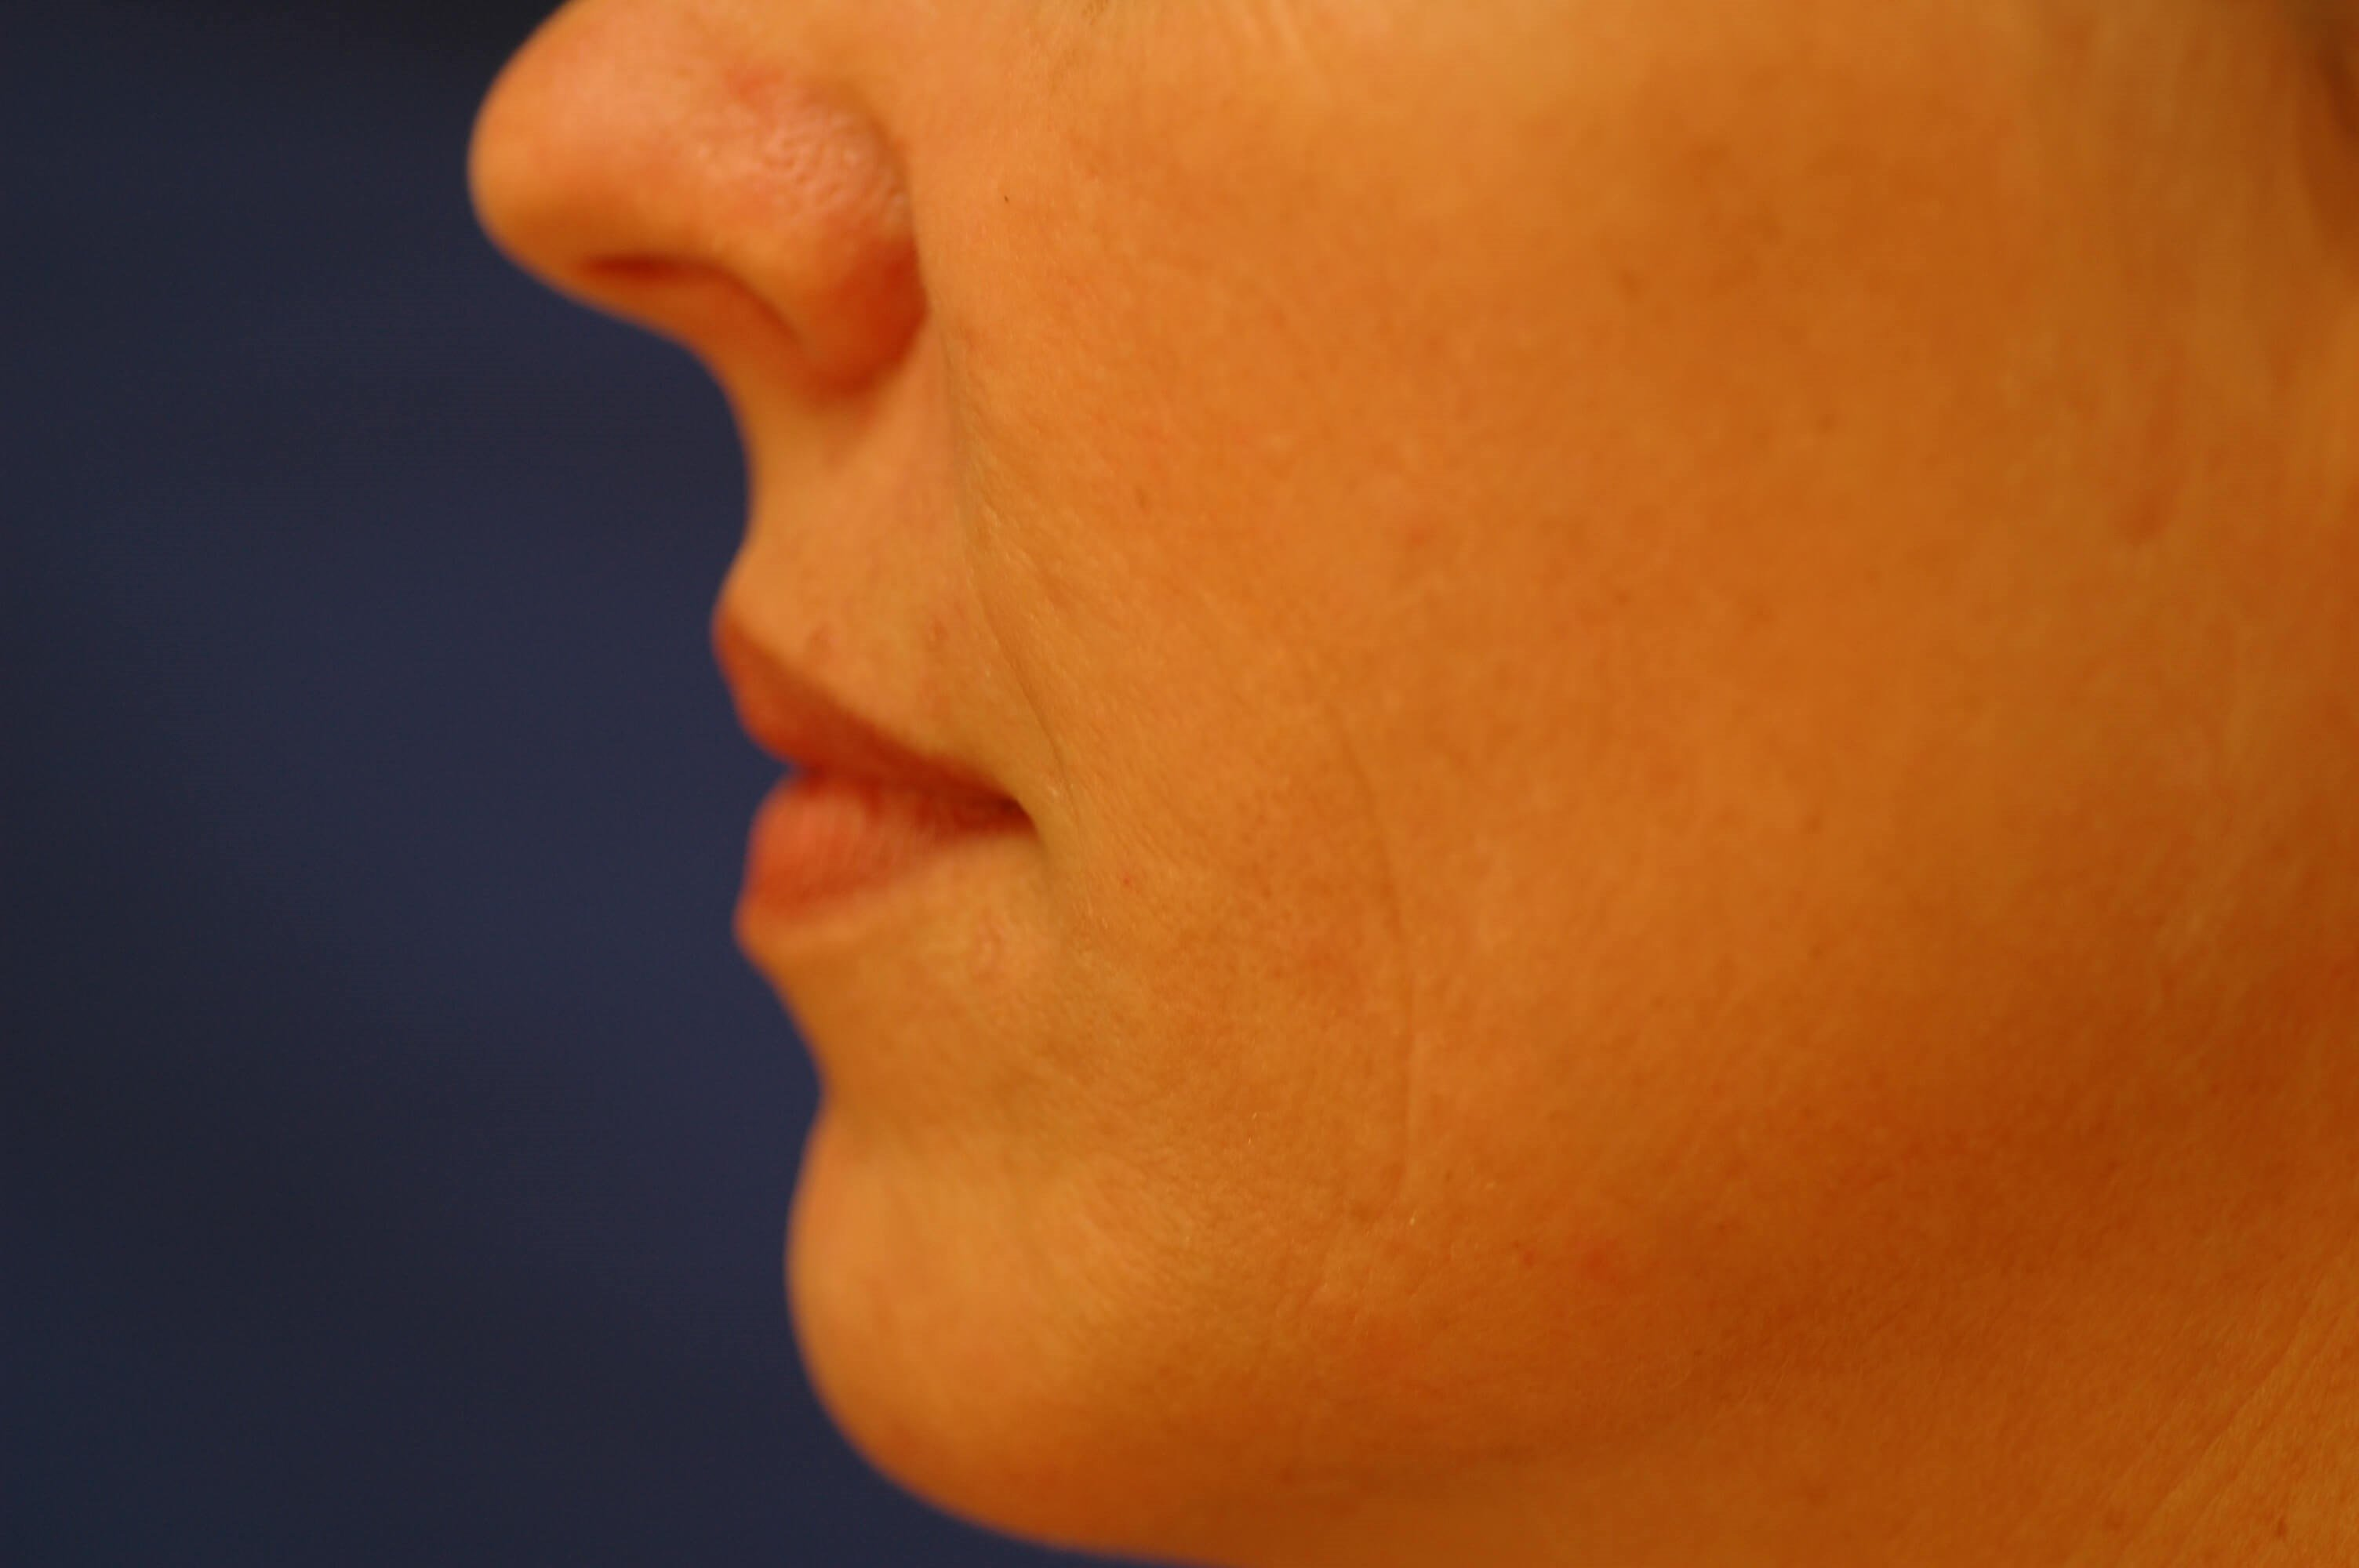 Newport Beach Microfat Graft Side View Before